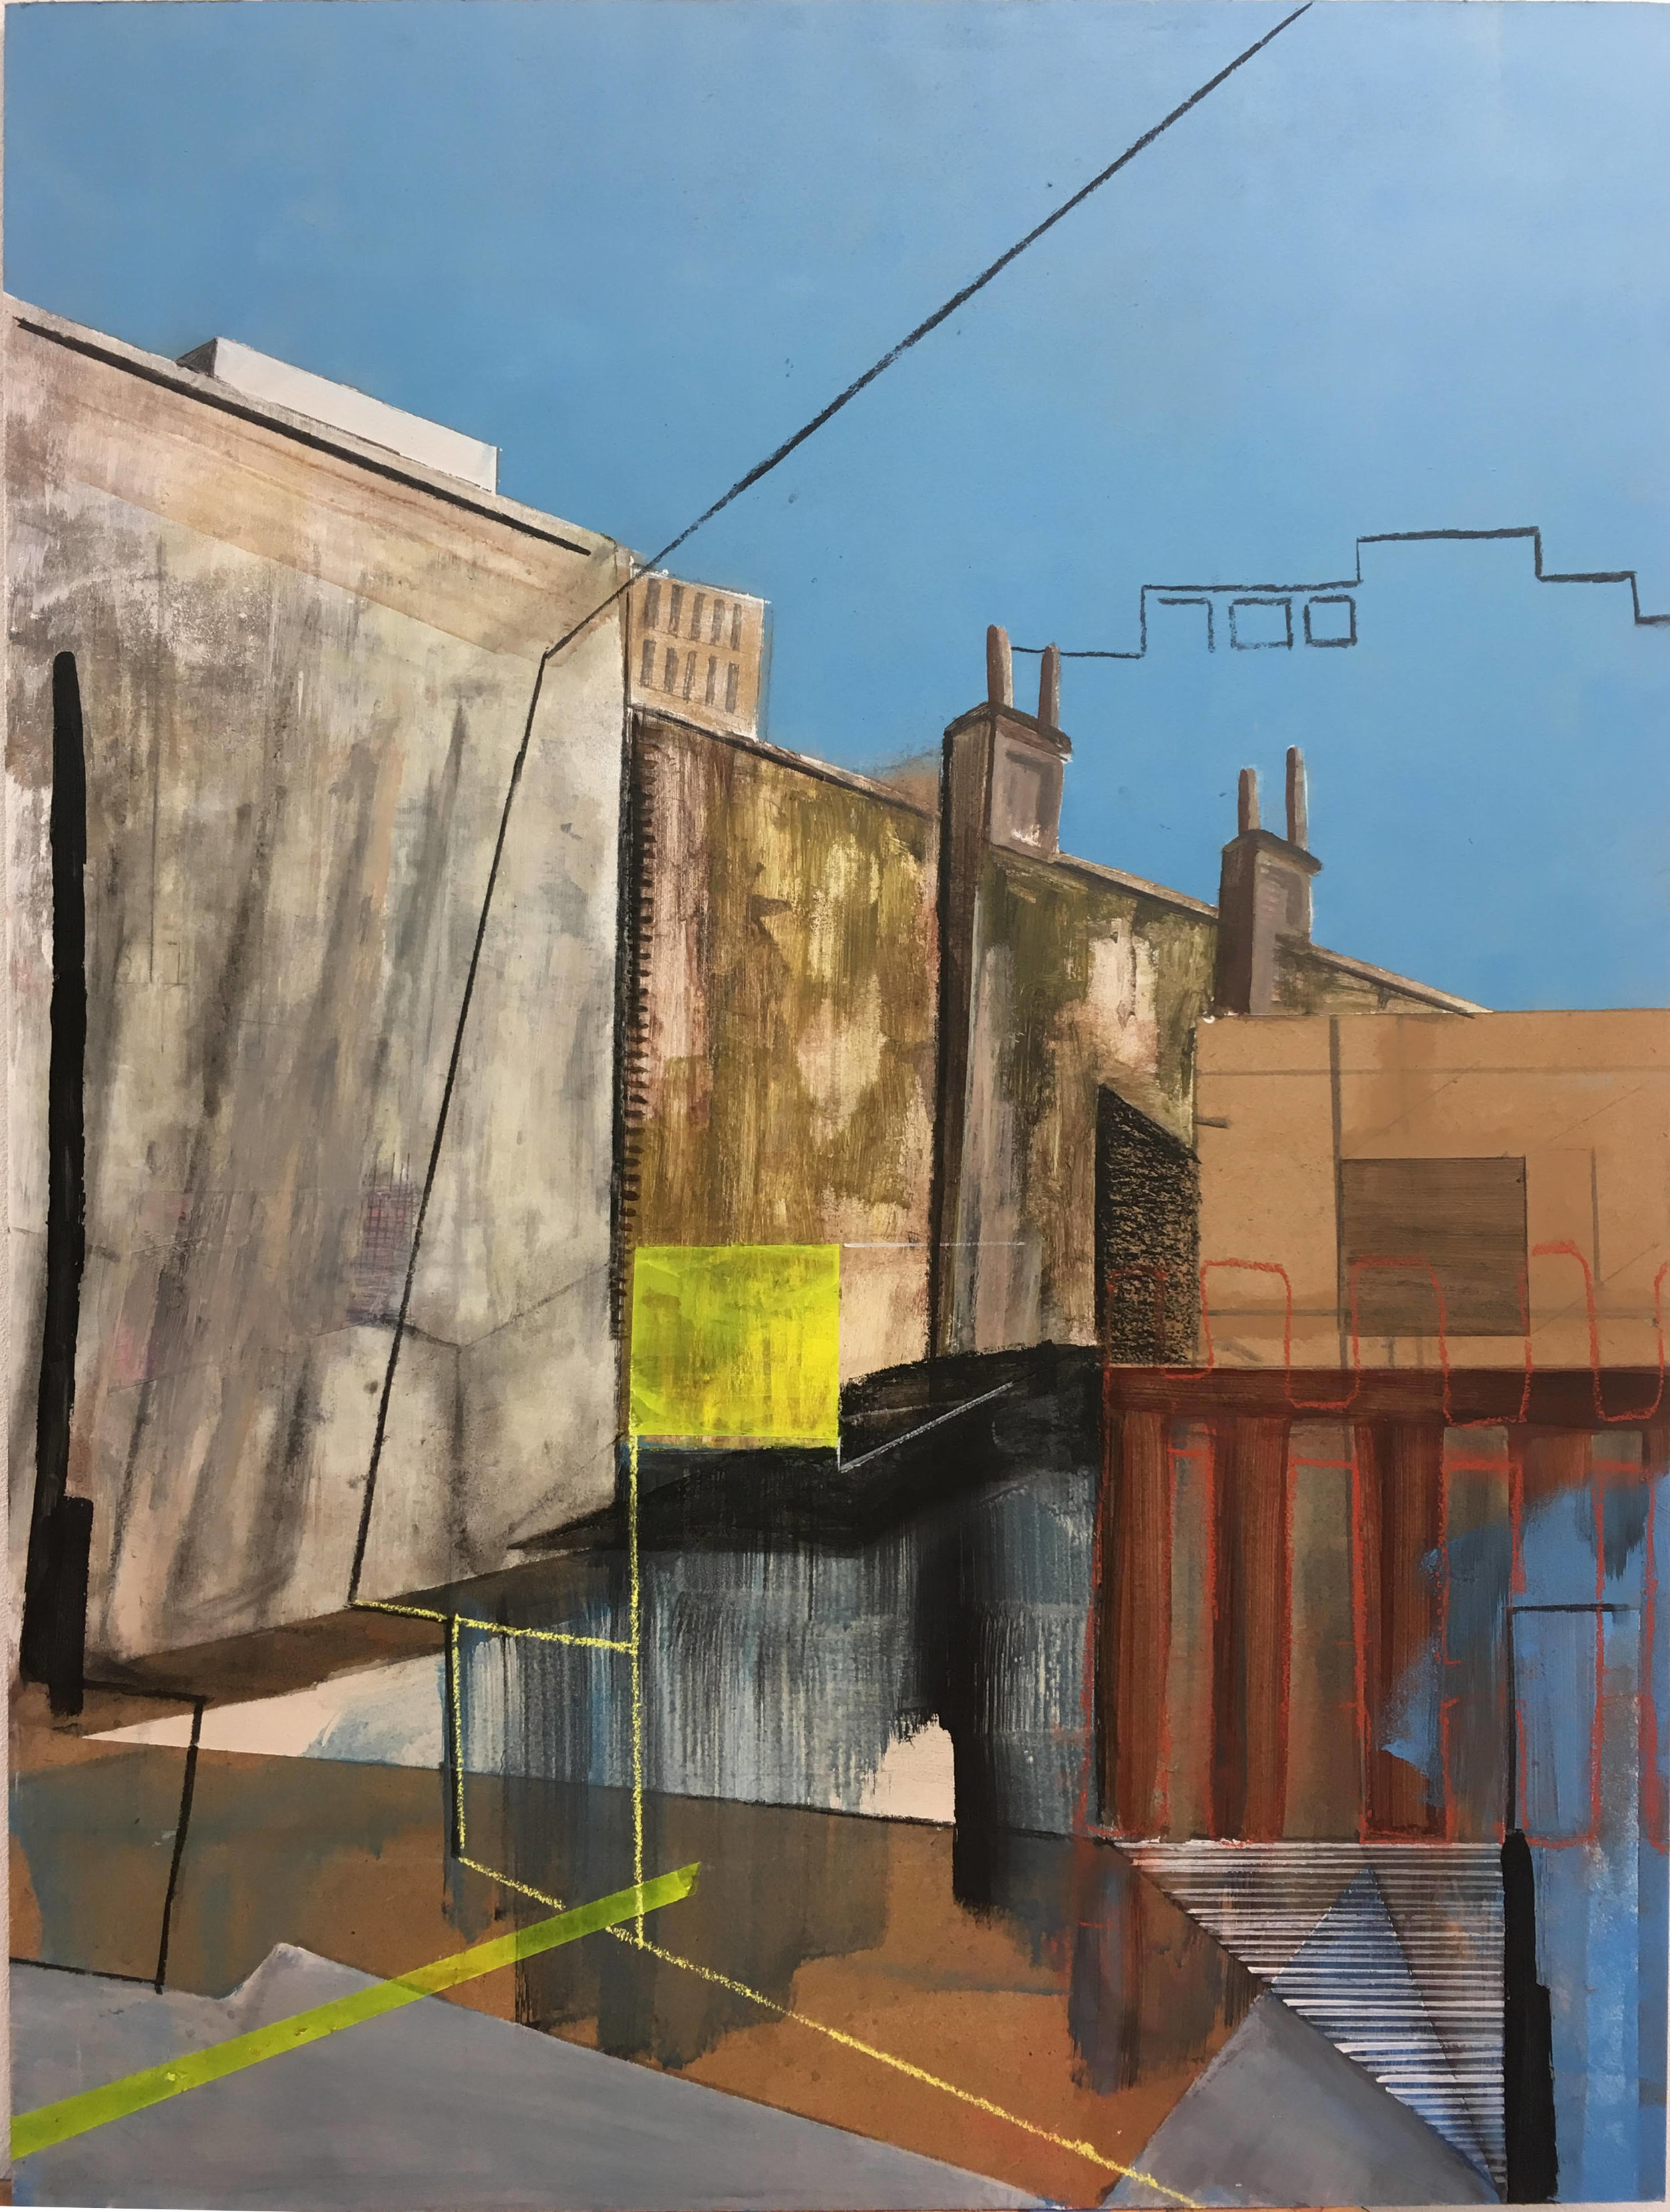 Urban Landscape with Yellow Square